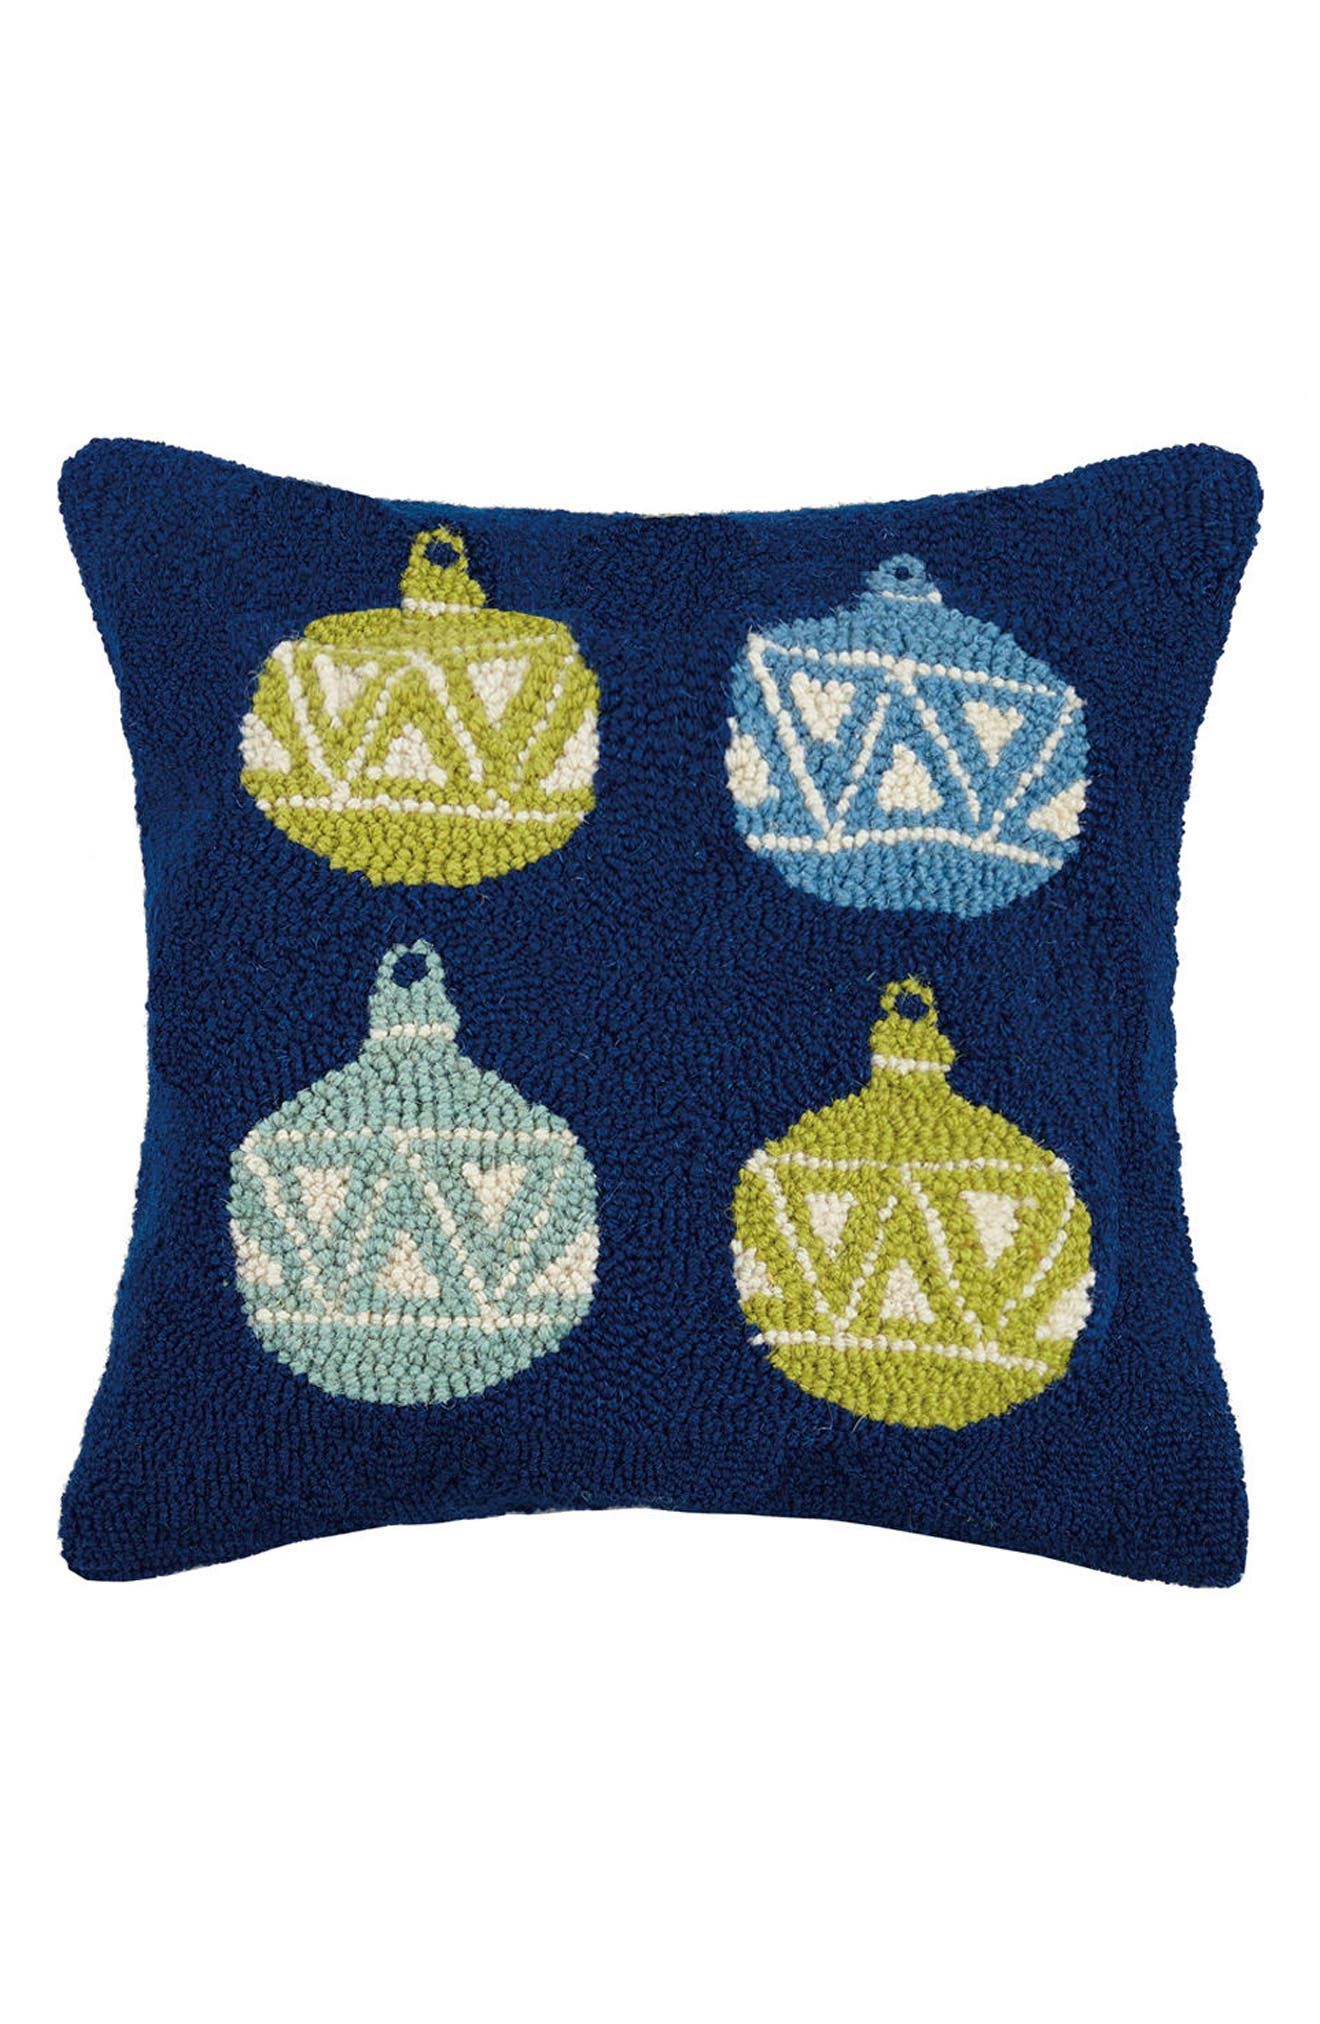 Alternate Image 1 Selected - Peking Handicraft Ornaments Hooked Accent Pillow